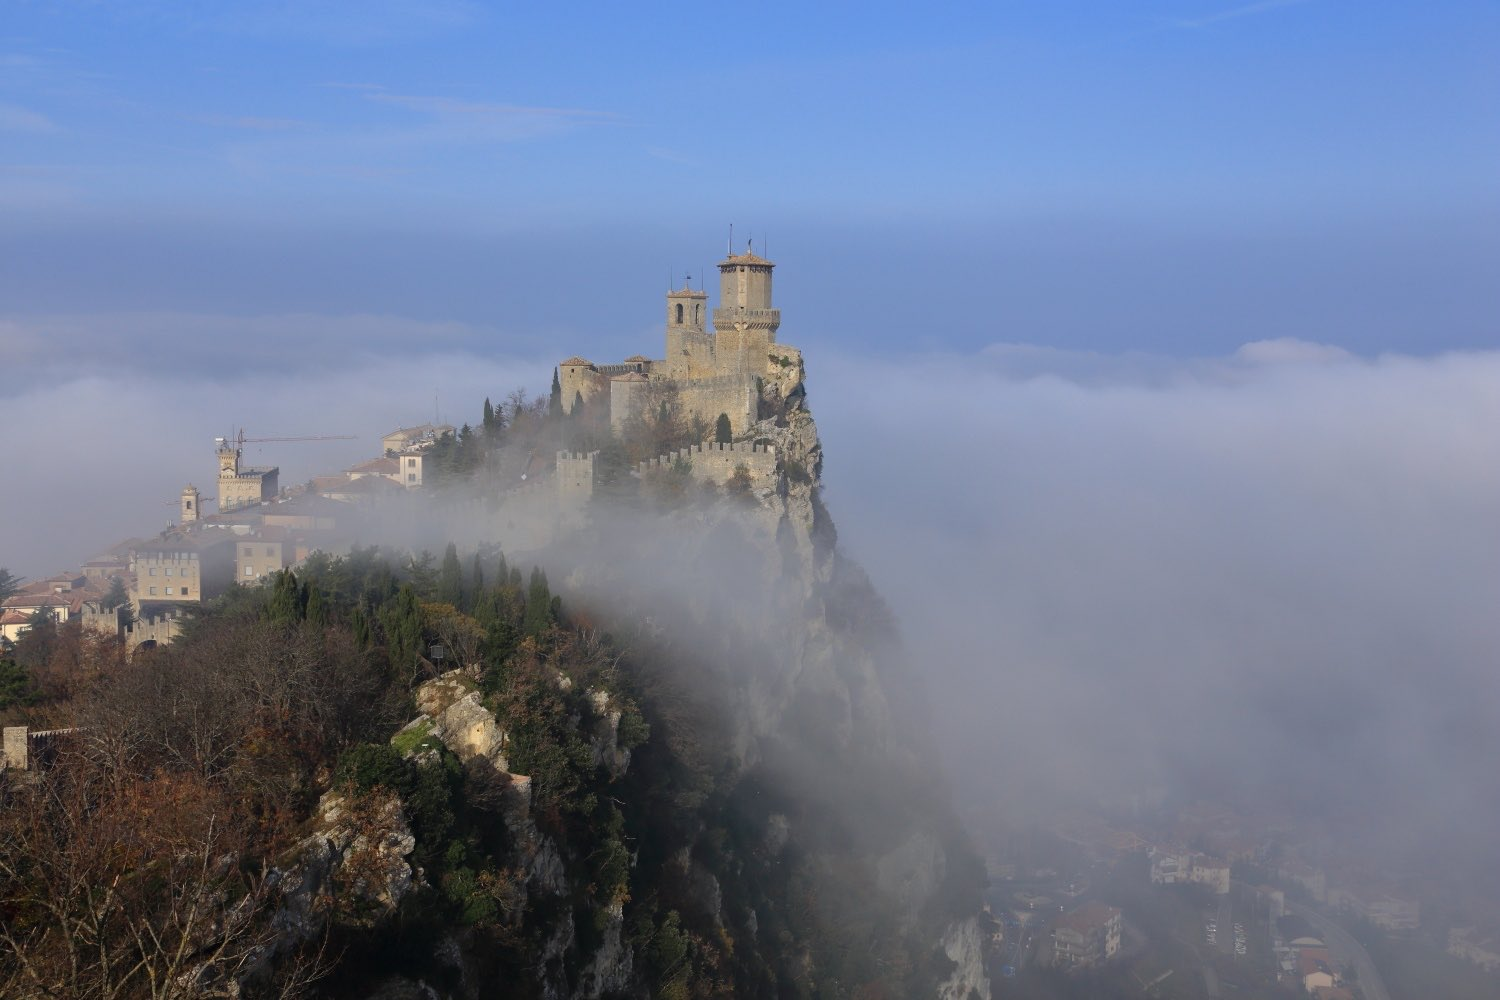 Republic of San Marino rising up from heaven!    Misty day in November... 23 November 2014. 1/320 s, f/11, ISO 100, 60 mm, EOS 6D + EF 28-300 L